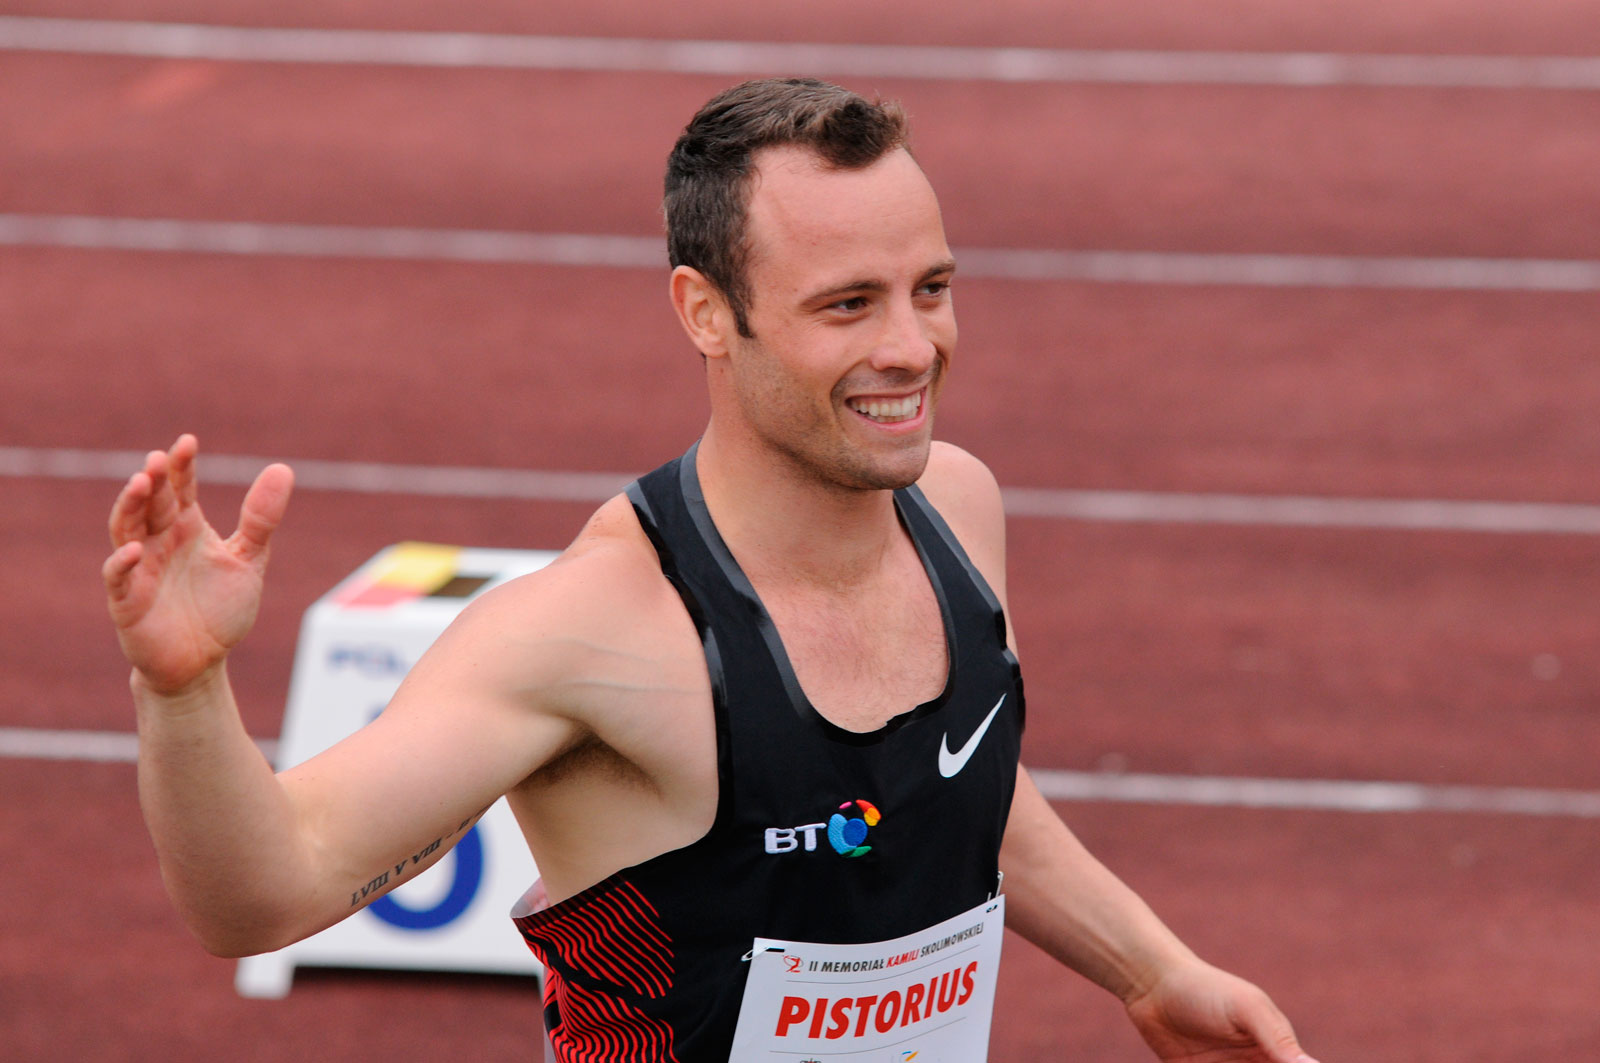 Il caso PISTORIUS in tv – L'intervista su Nove